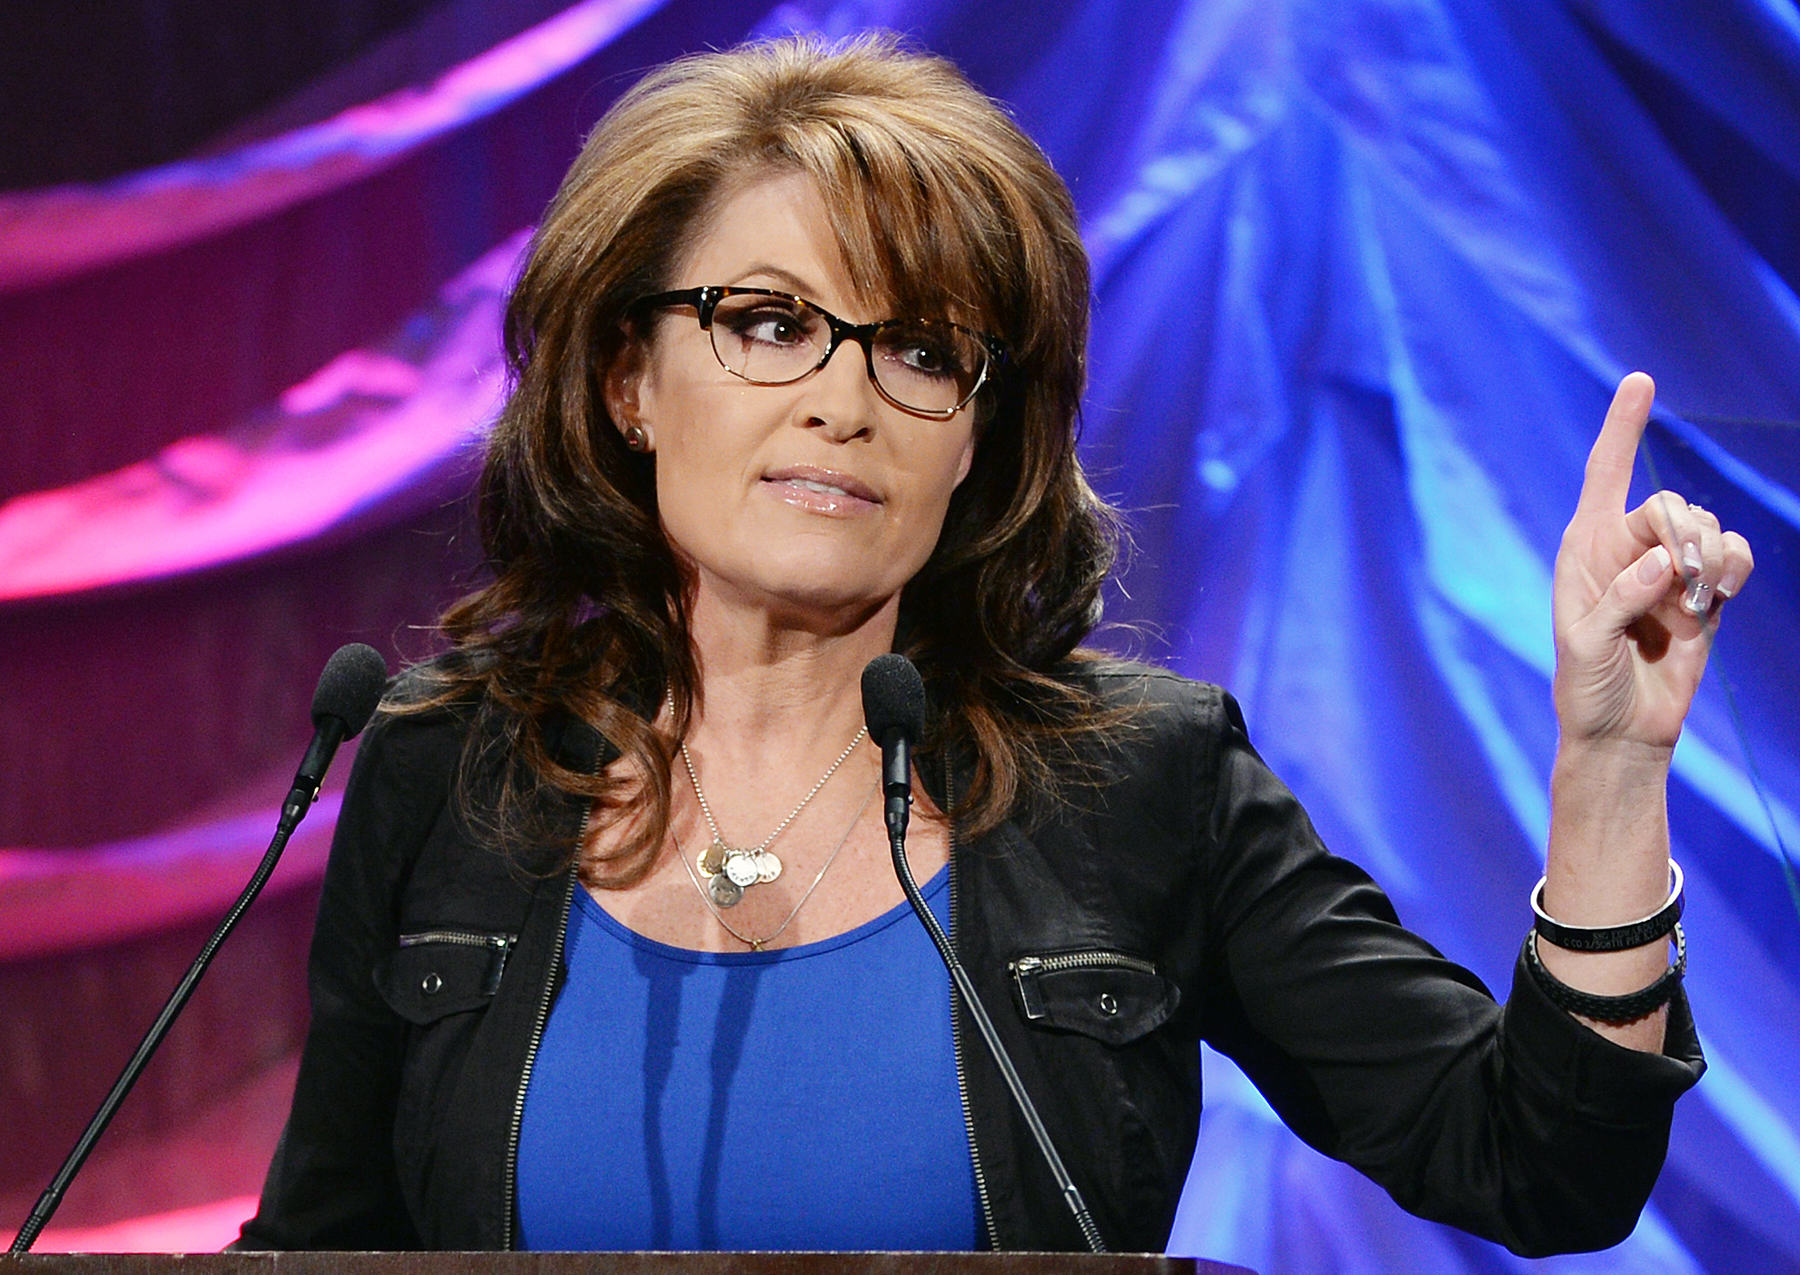 Sarah Palin Claims Arrested Muslim Schoolboy Ahmed Mohamed Is Not Innocent UNILAD palin ahmed 18